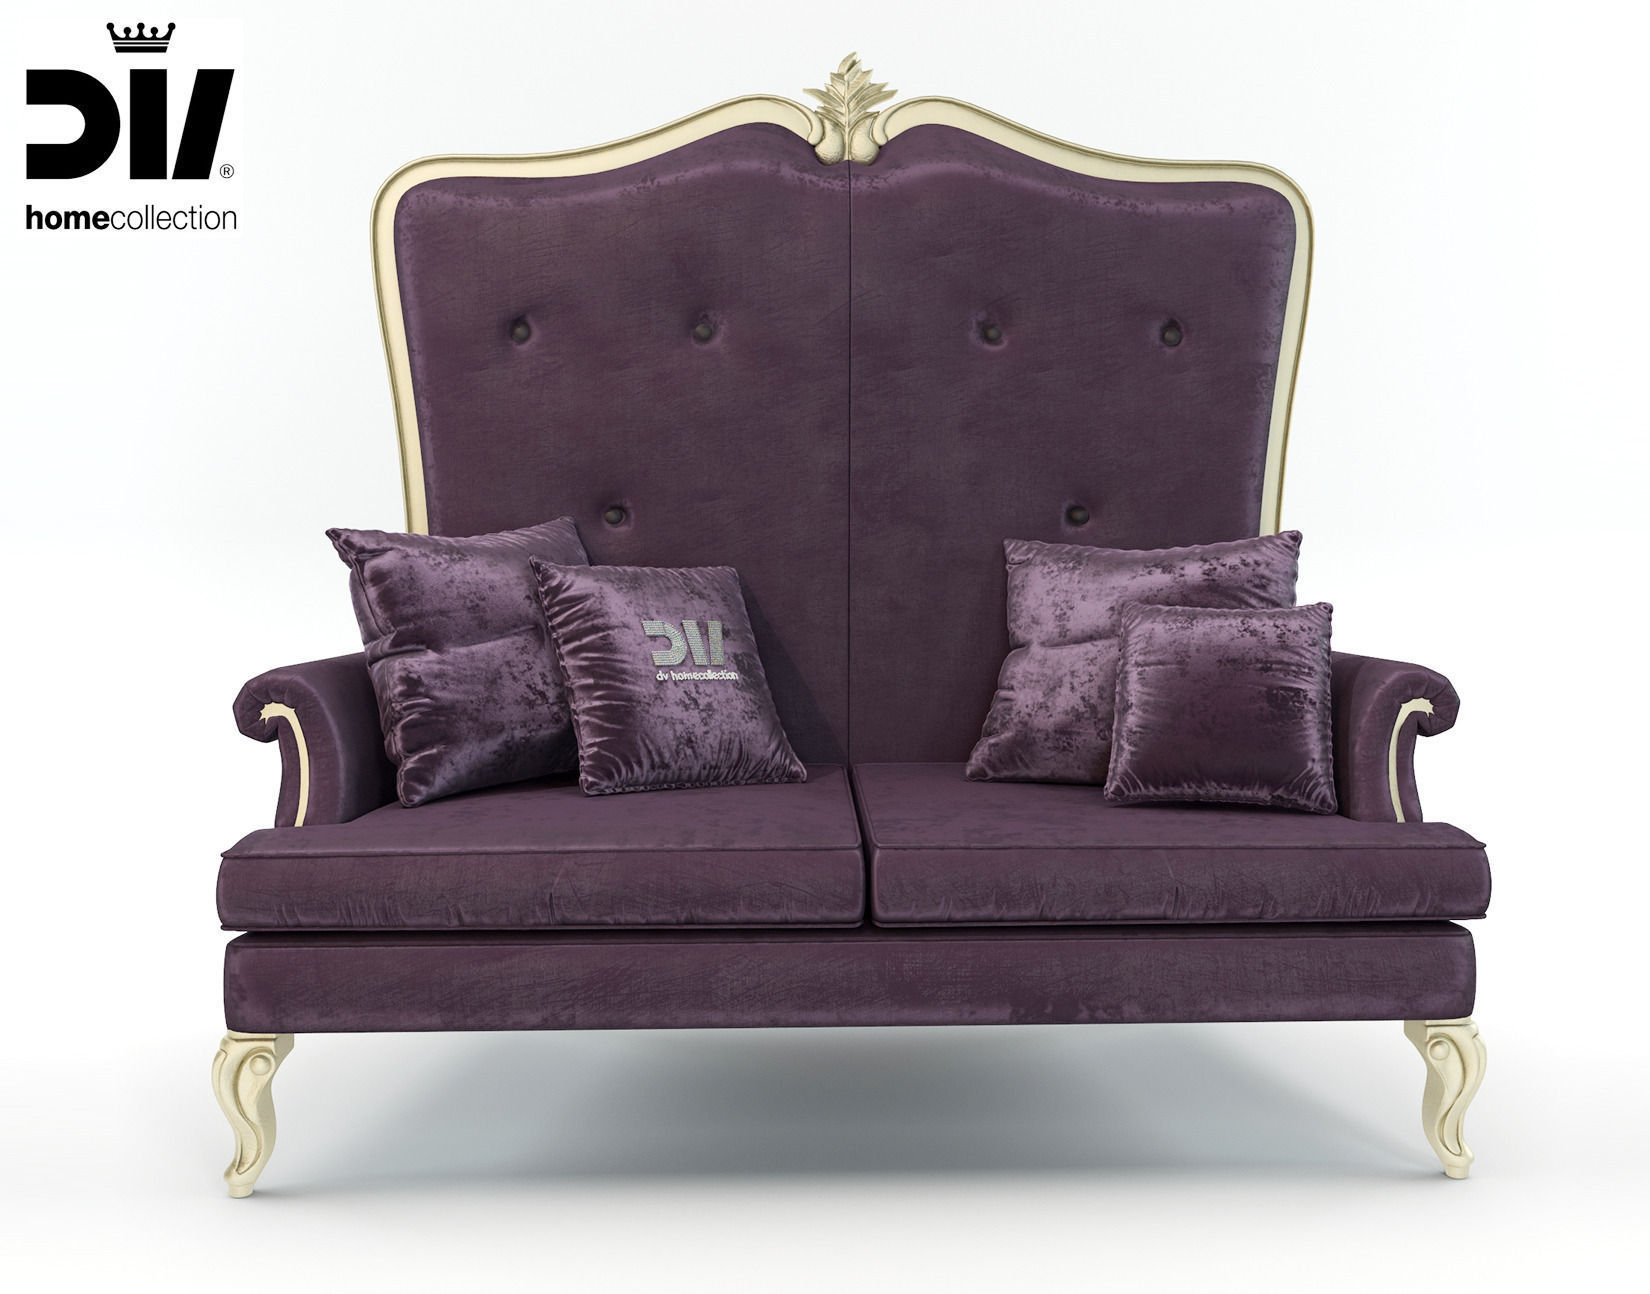 High Back Classic Elegant Sofa By Dv Home Collection 3d